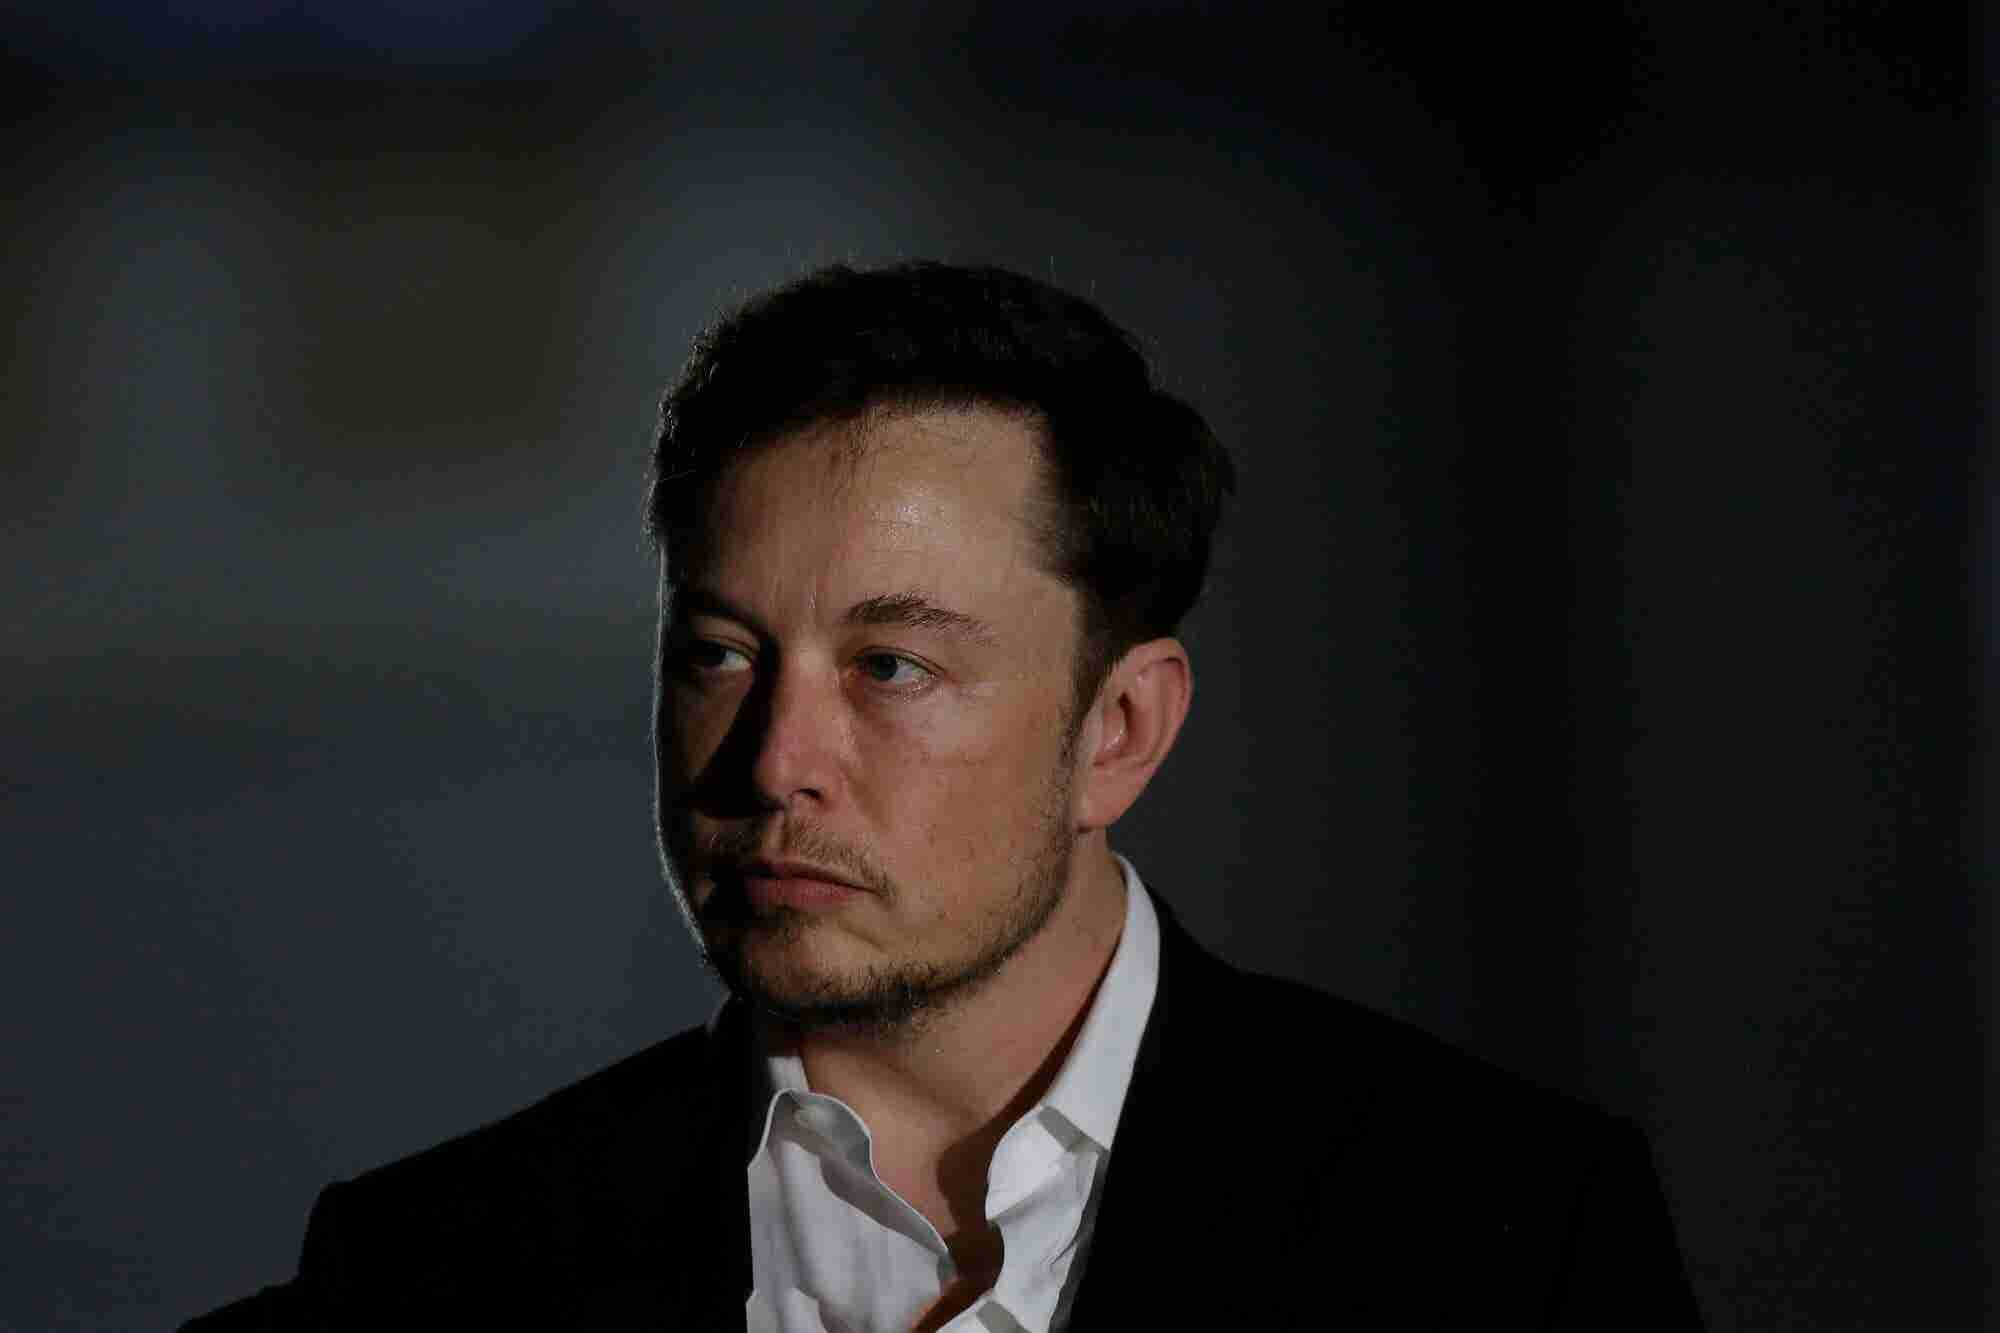 Elon Musk Is Sounding Very Unhappy and Assumes His Life Will Get Worse